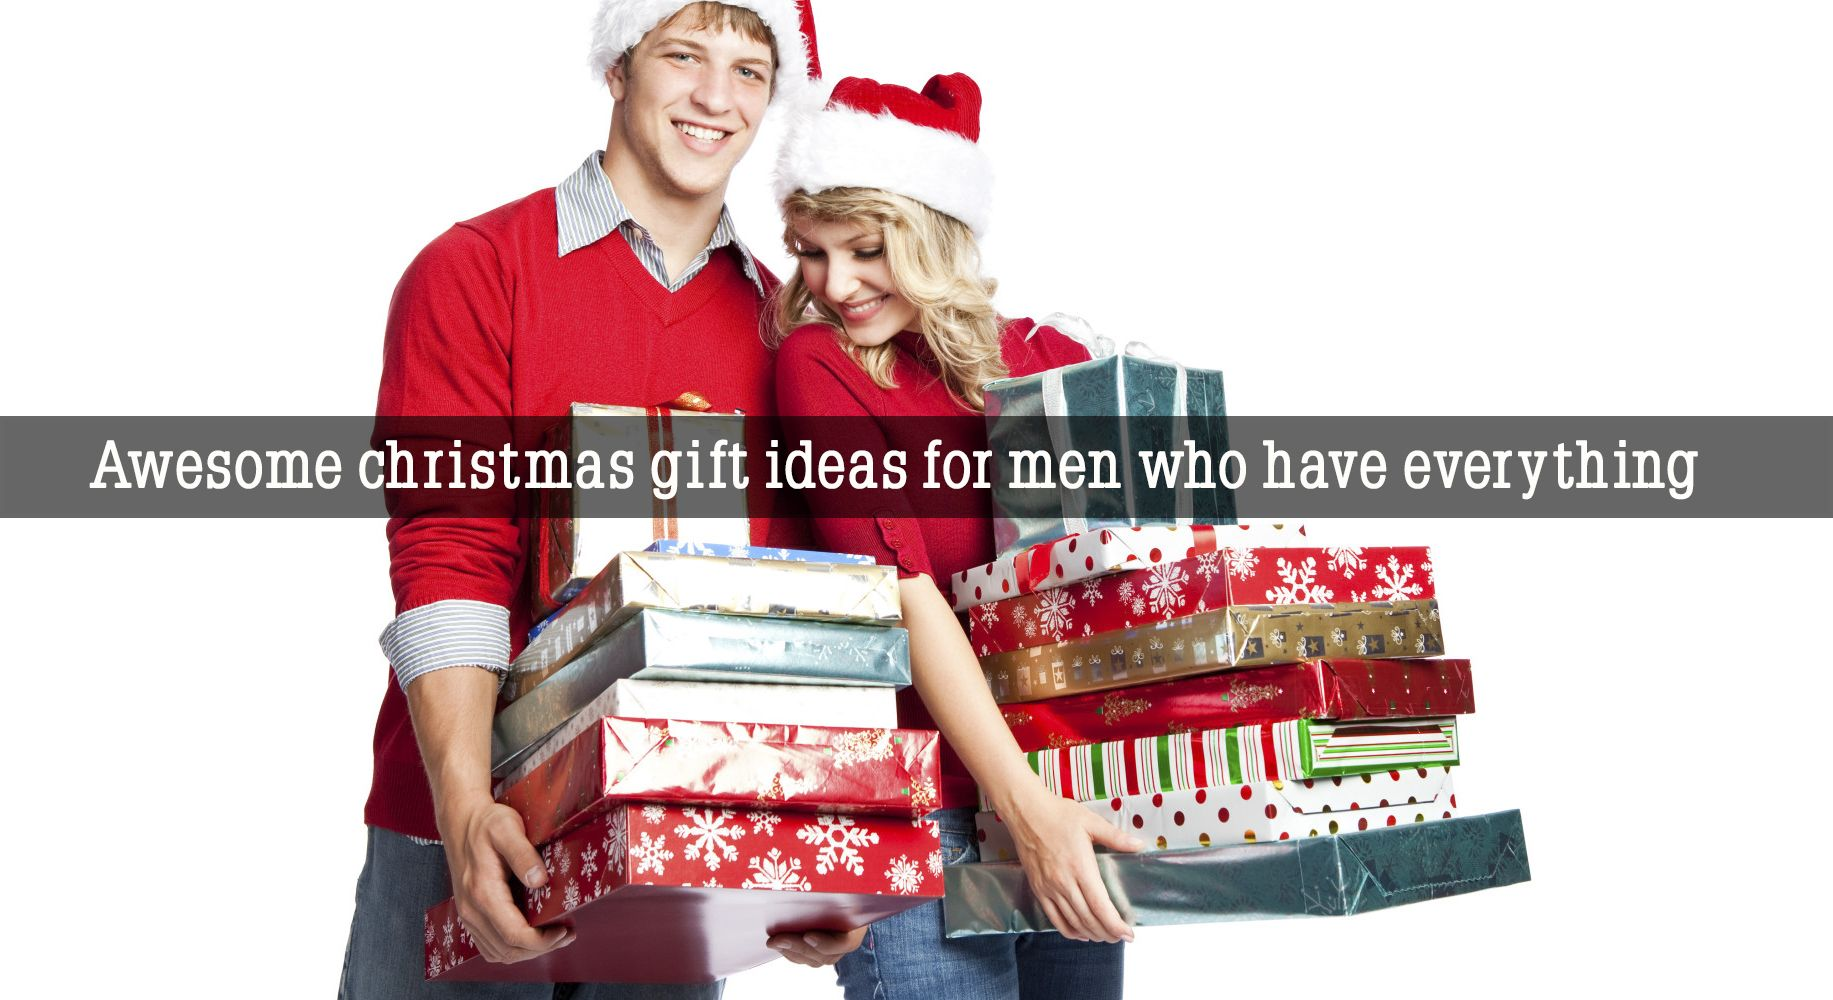 Awesome christmas gift ideas for men who have everything